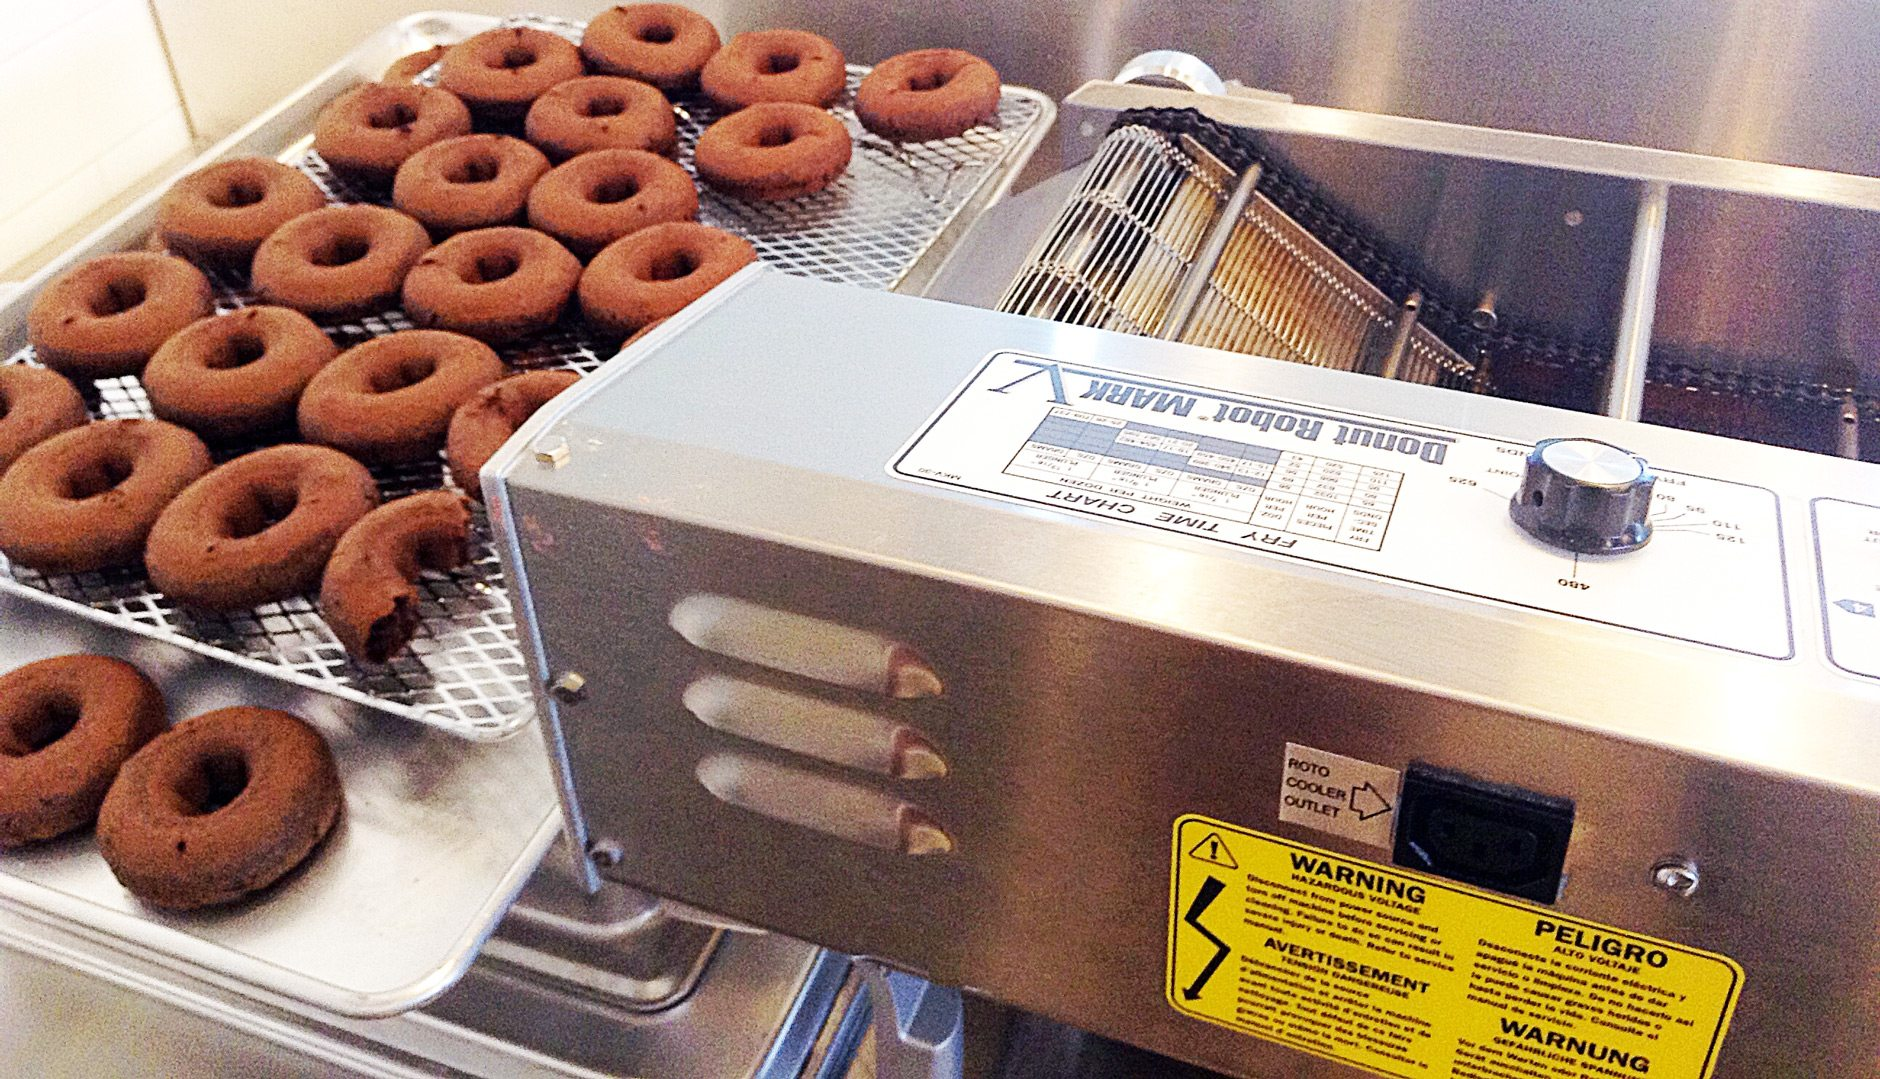 The doughnut machine, which visitors can watch working, can make up to 120 doughnuts a minute